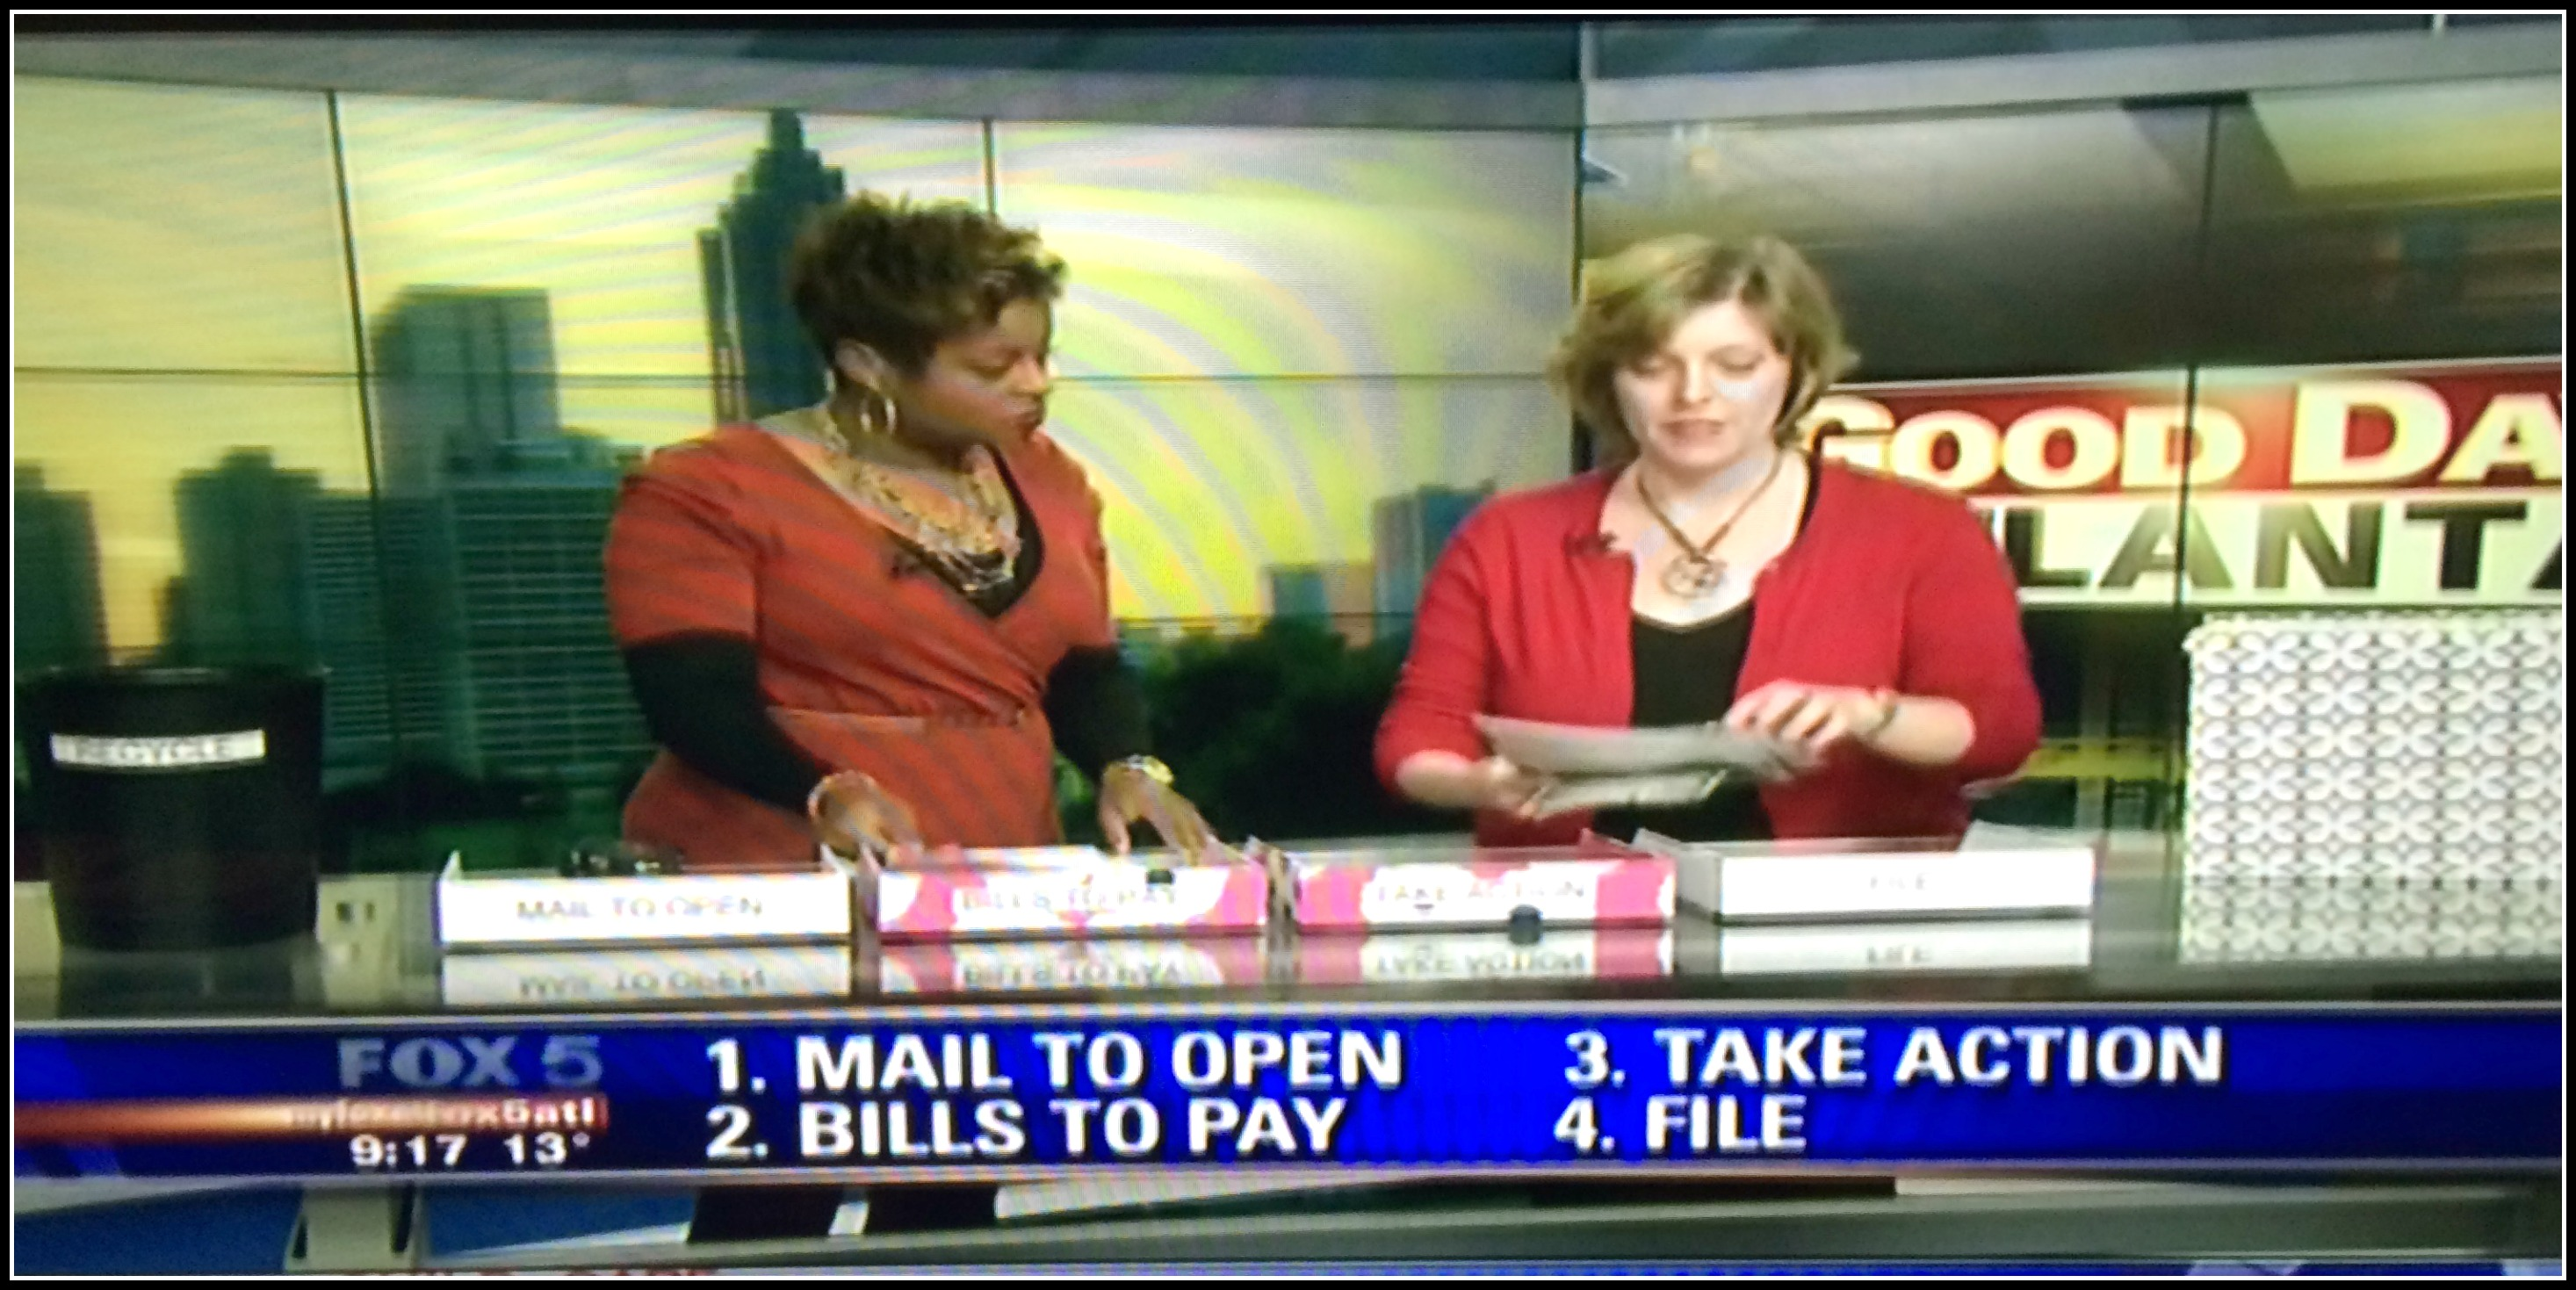 Laura Ray on Fox 5 Good Day Atlanta : Organize your paper